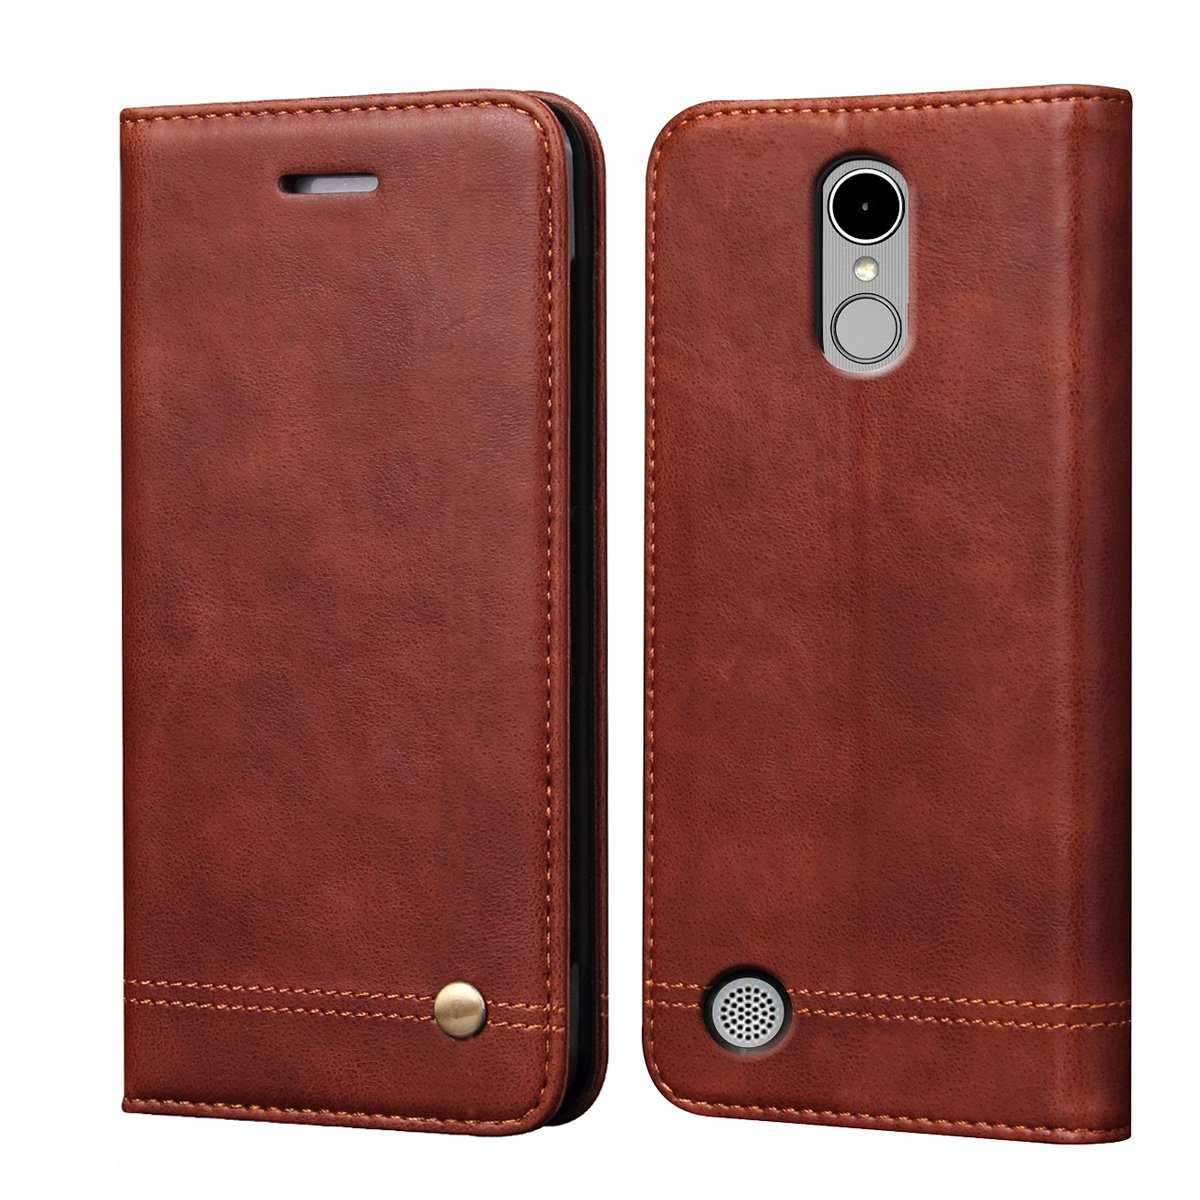 LG K20 V Case, LG K20 Plus Case,LG K10 2017 Case,LV V5 Case,LG Harmony Case, RUIHUI Flip Leather Protective Wallet Cover Case with Card Slots,Kickstand and Magnetic Closure (Brown)